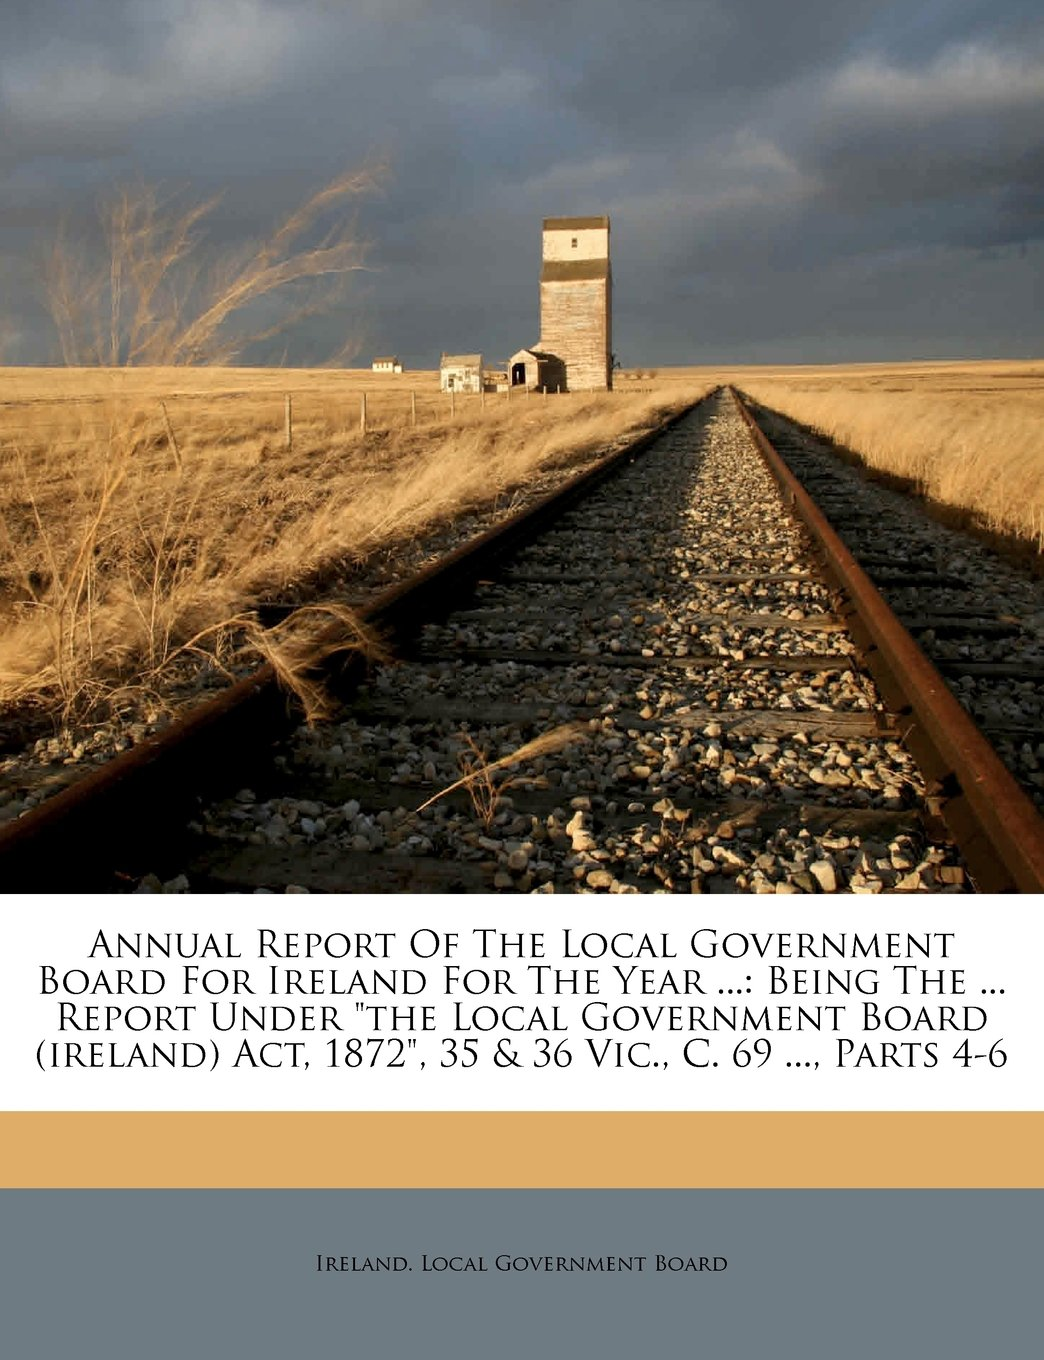 "Annual Report Of The Local Government Board For Ireland For The Year ...: Being The ... Report Under ""the Local Government Board (ireland) Act, 1872"", 35 & 36 Vic., C. 69 ..., Parts 4-6 pdf"